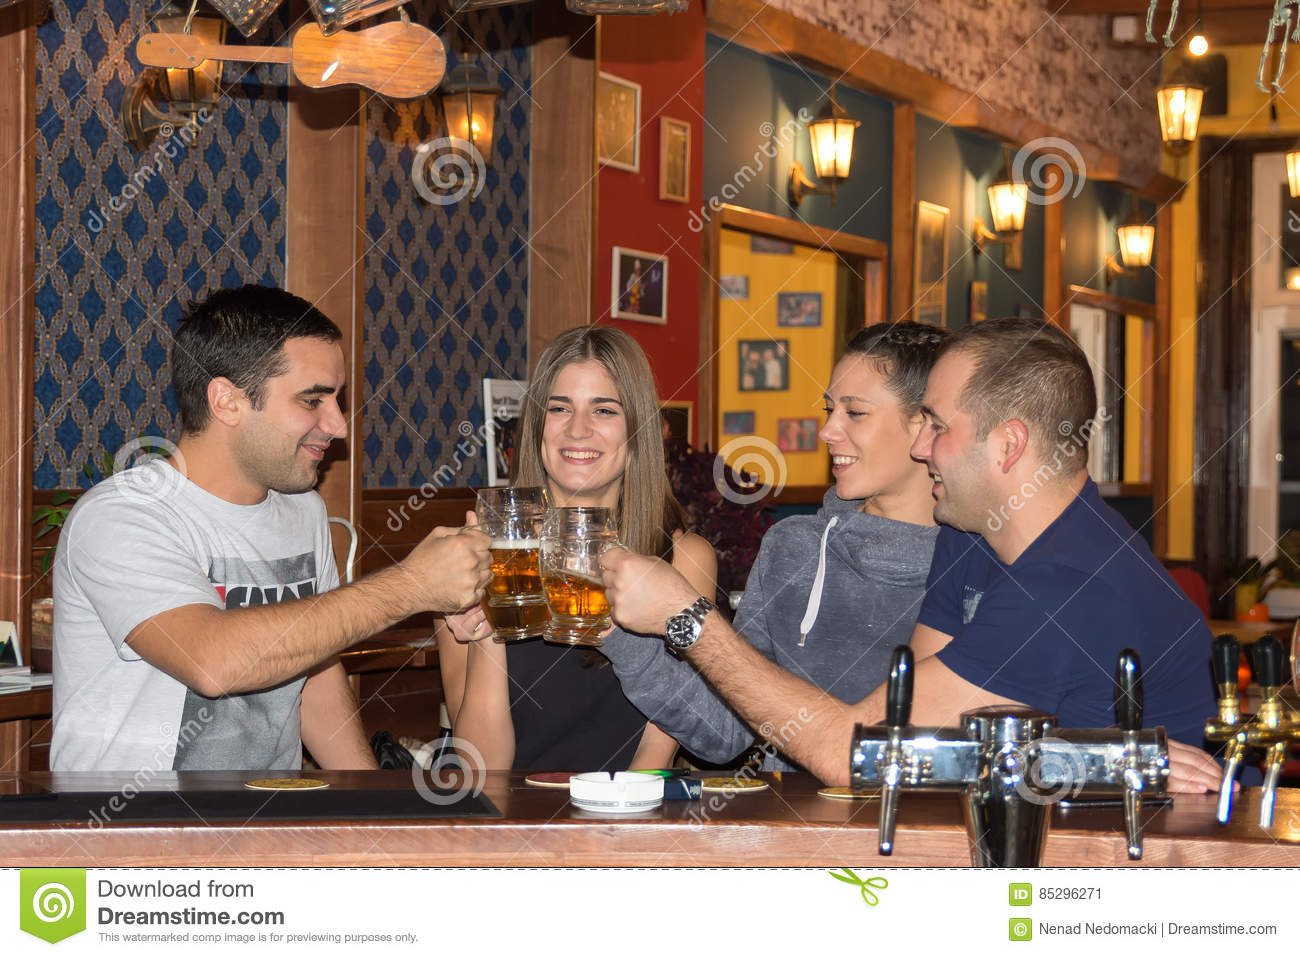 Friends having drinks in a bar